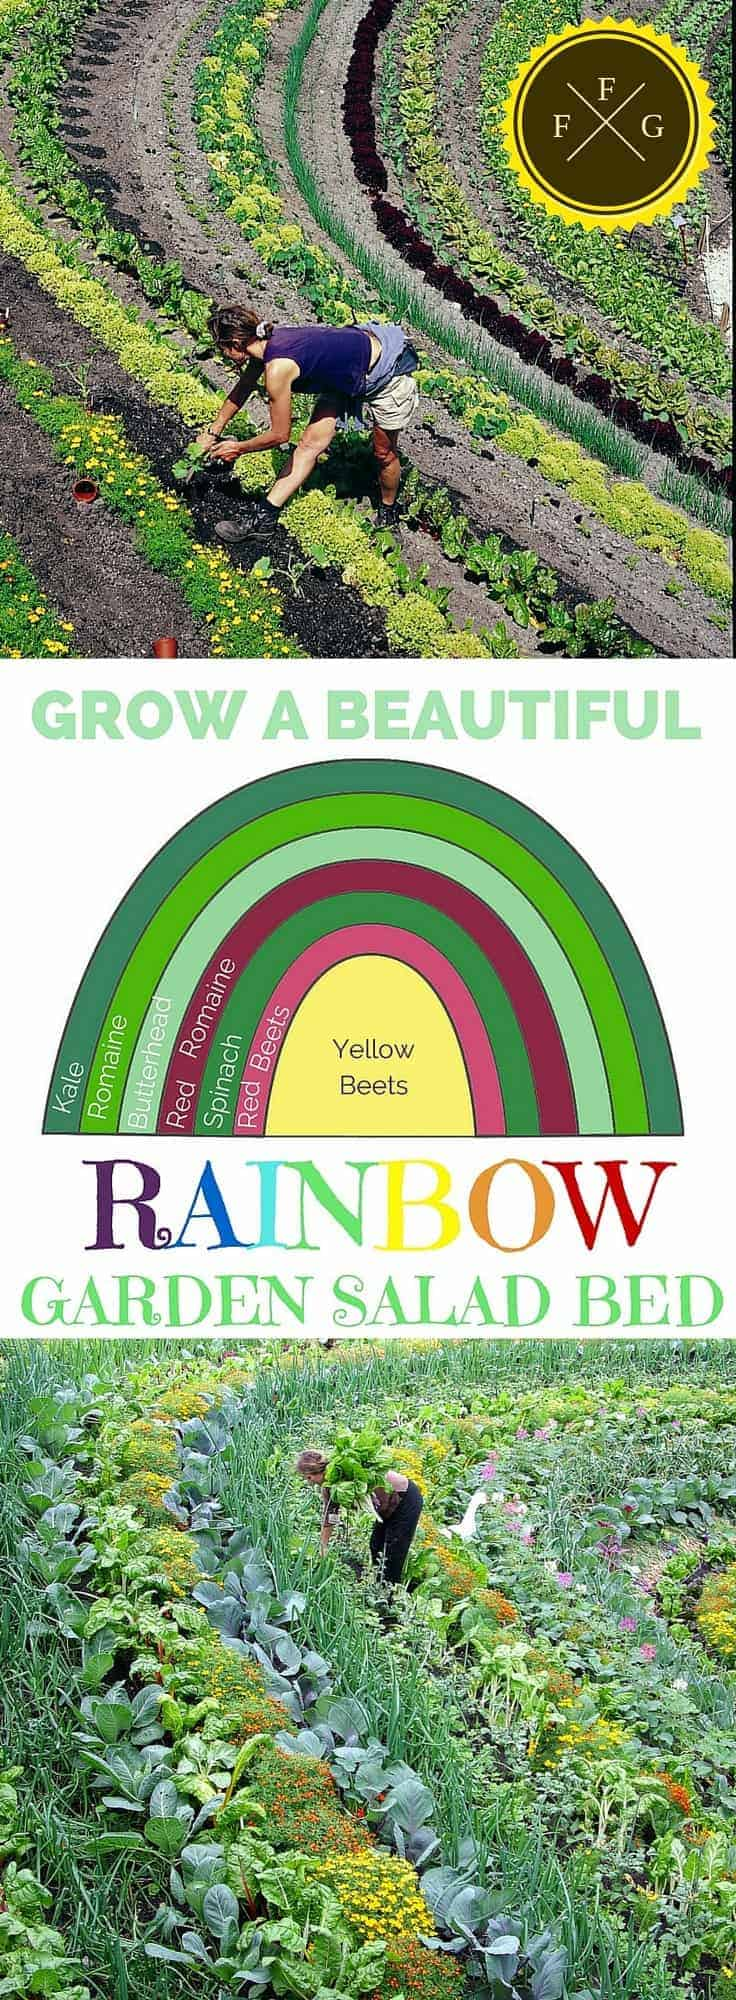 Edible Landscaping! Grow a beautiful garden salad rainbow! Healthy and pretty.